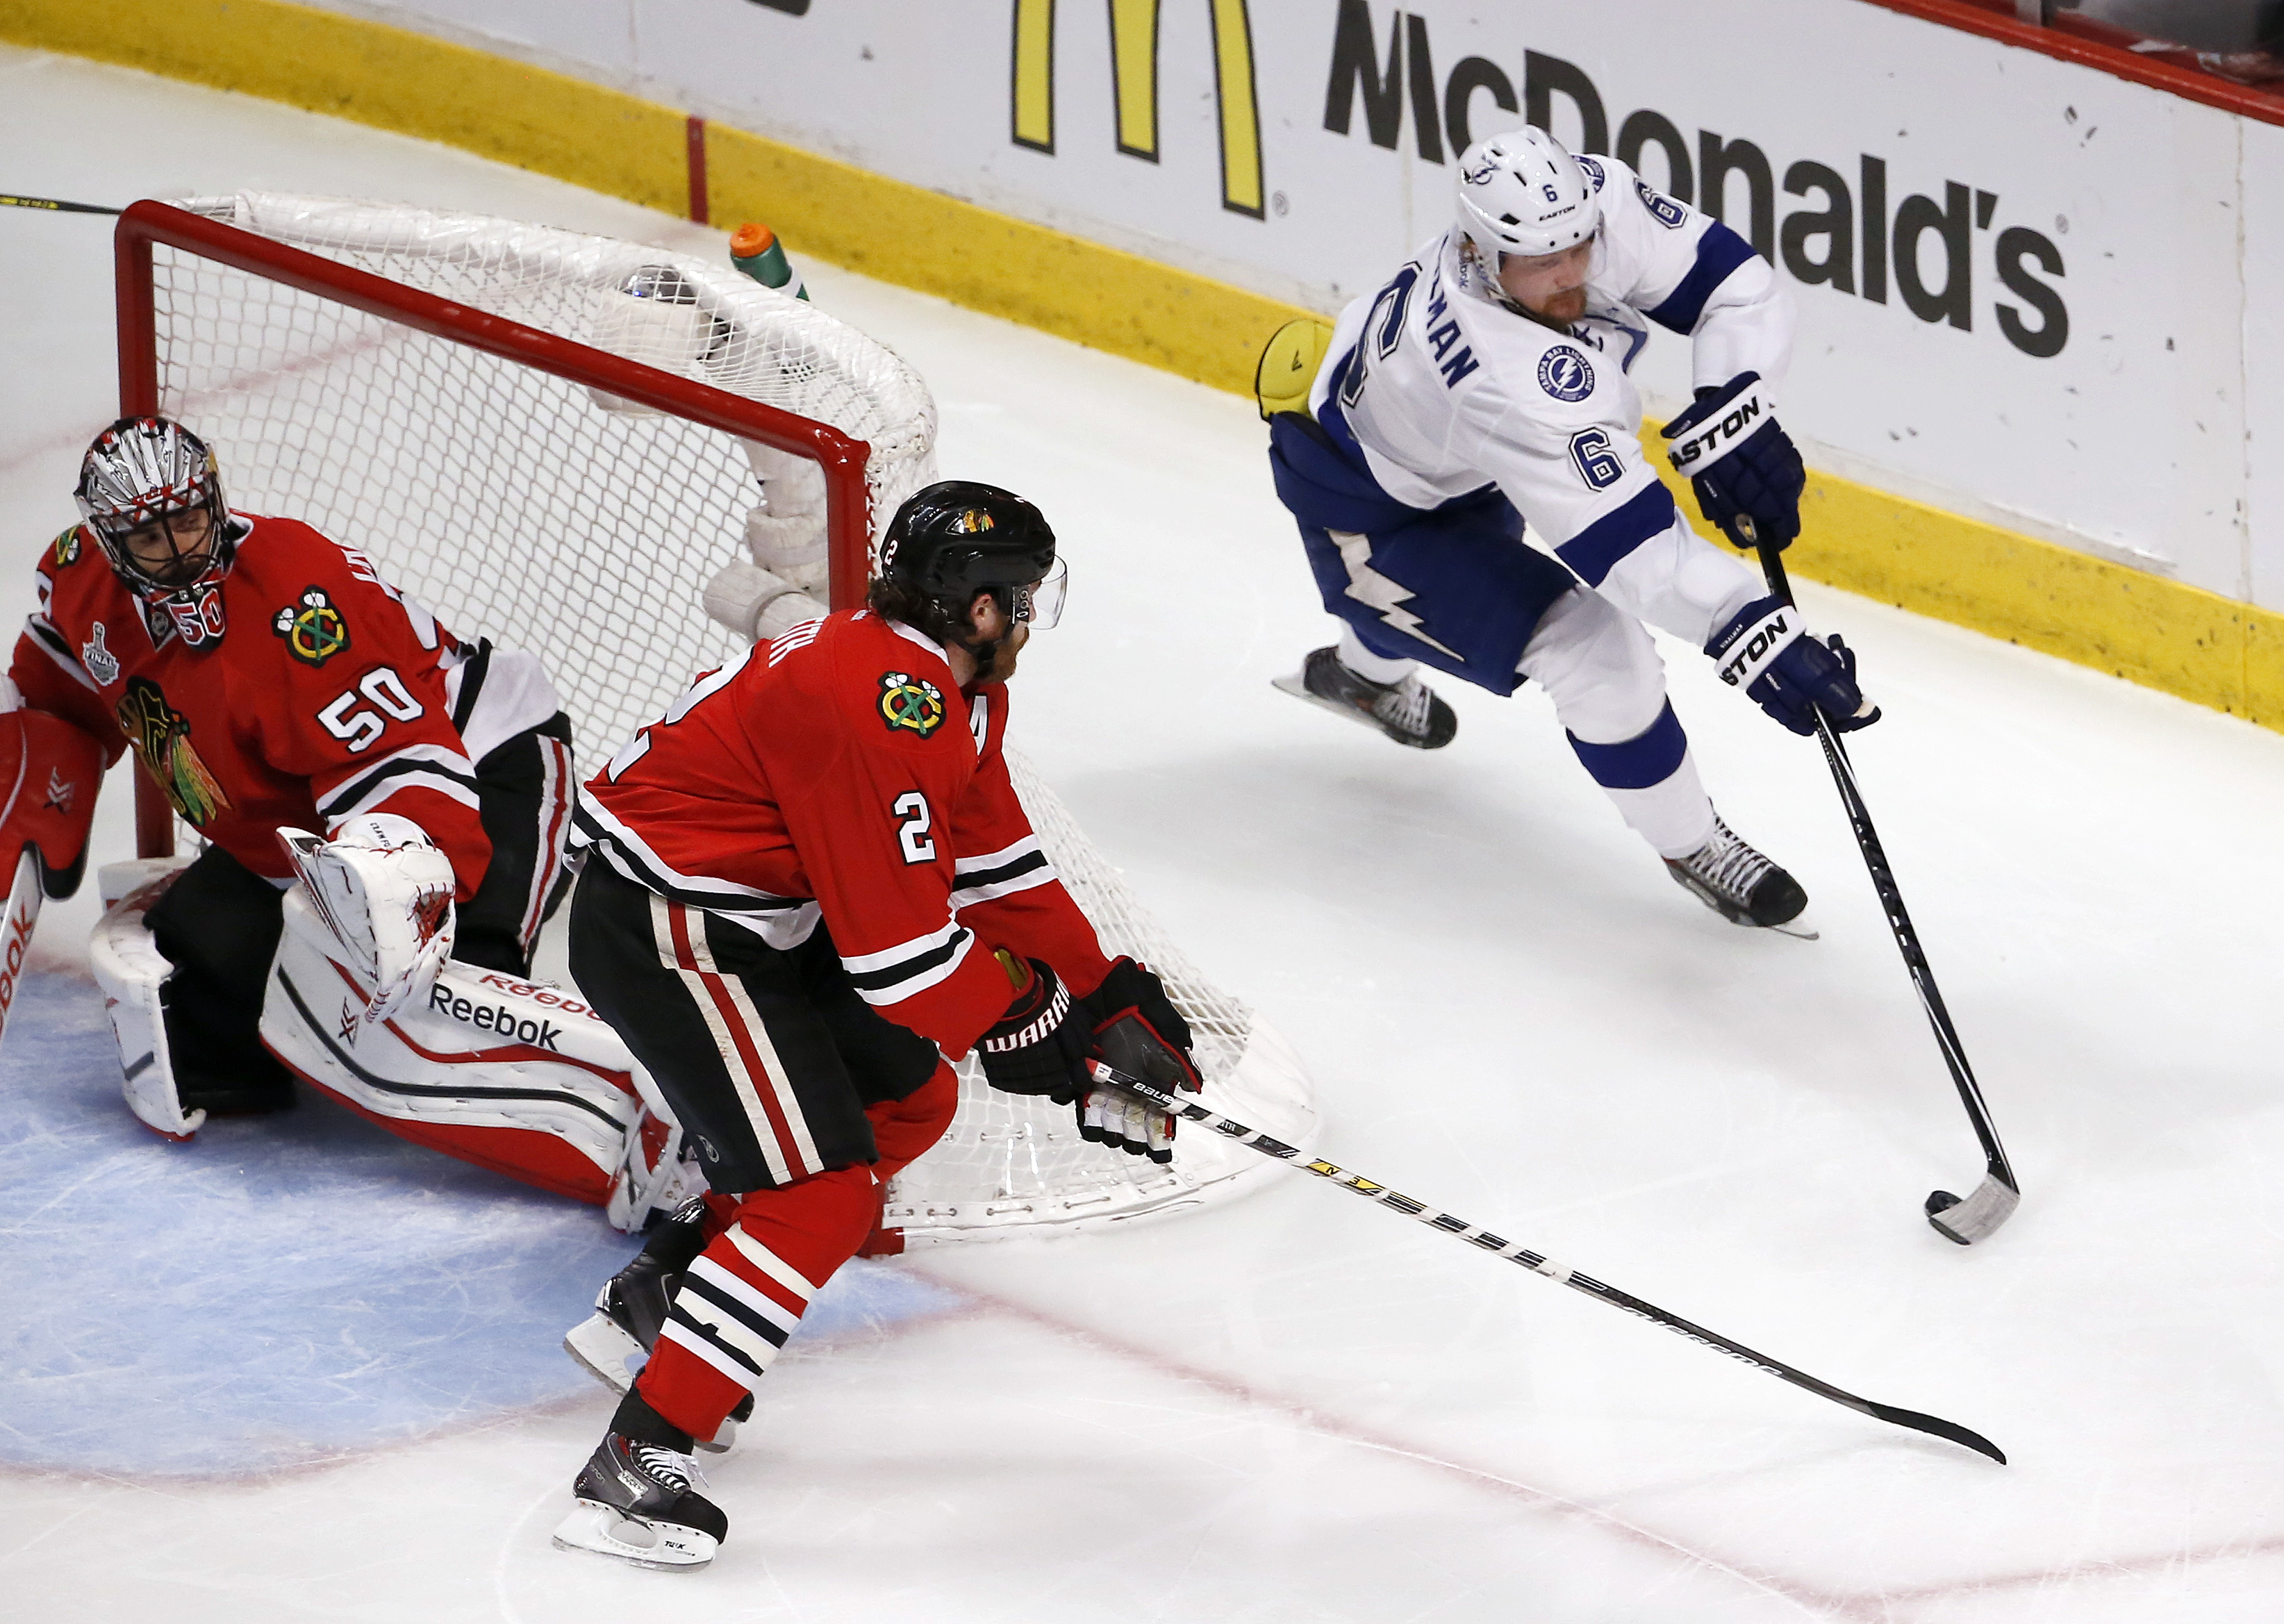 Chicago Blackhawks defenseman Duncan Keith (2) and goalie Corey Crawford (50) defends the goal as Tampa Bay Lightning defenseman Anton Stralman (6) handles the puck during the first period in Game 3 of the NHL hockey Stanley Cup Final on Monday, June 8, 2